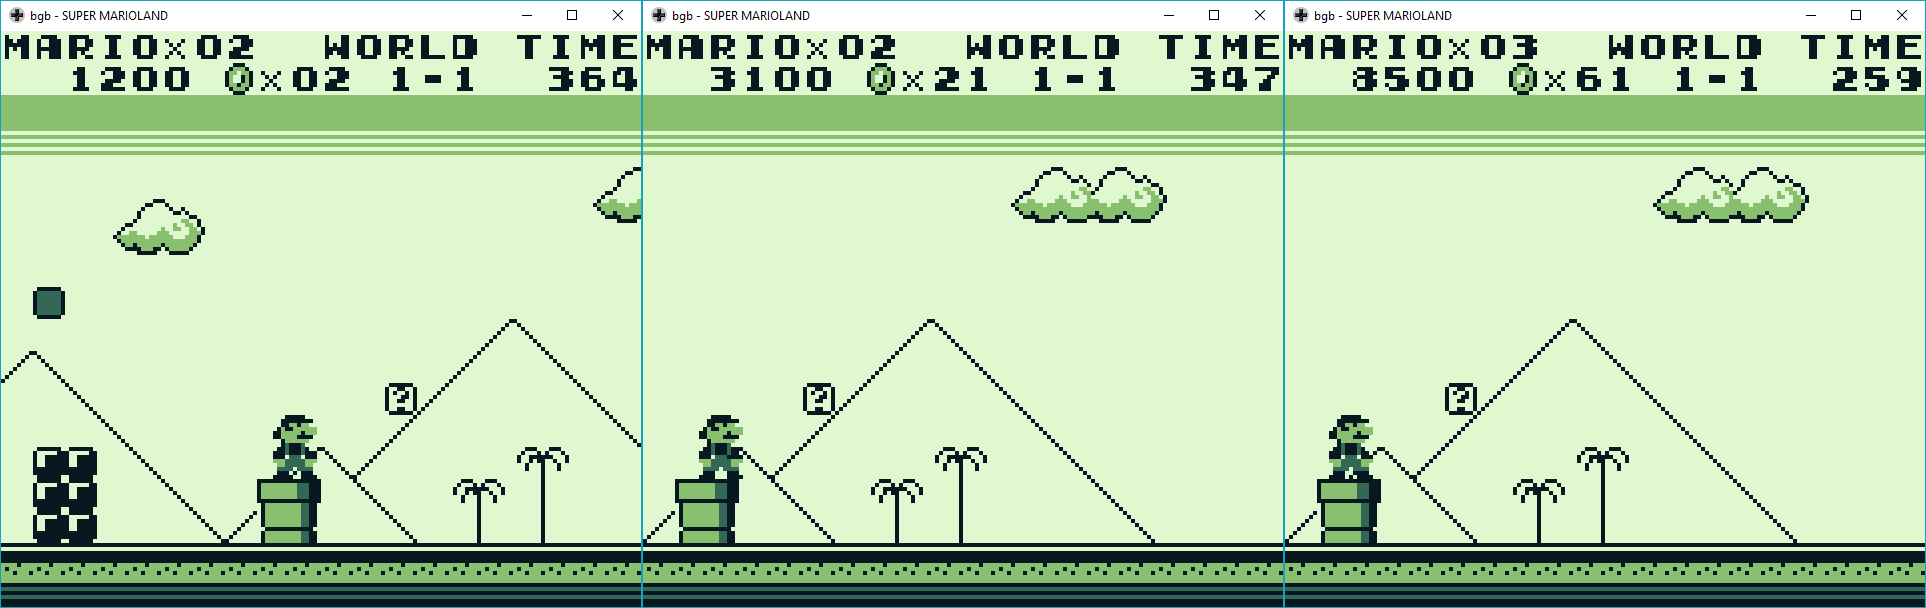 super_mario_land-10.png